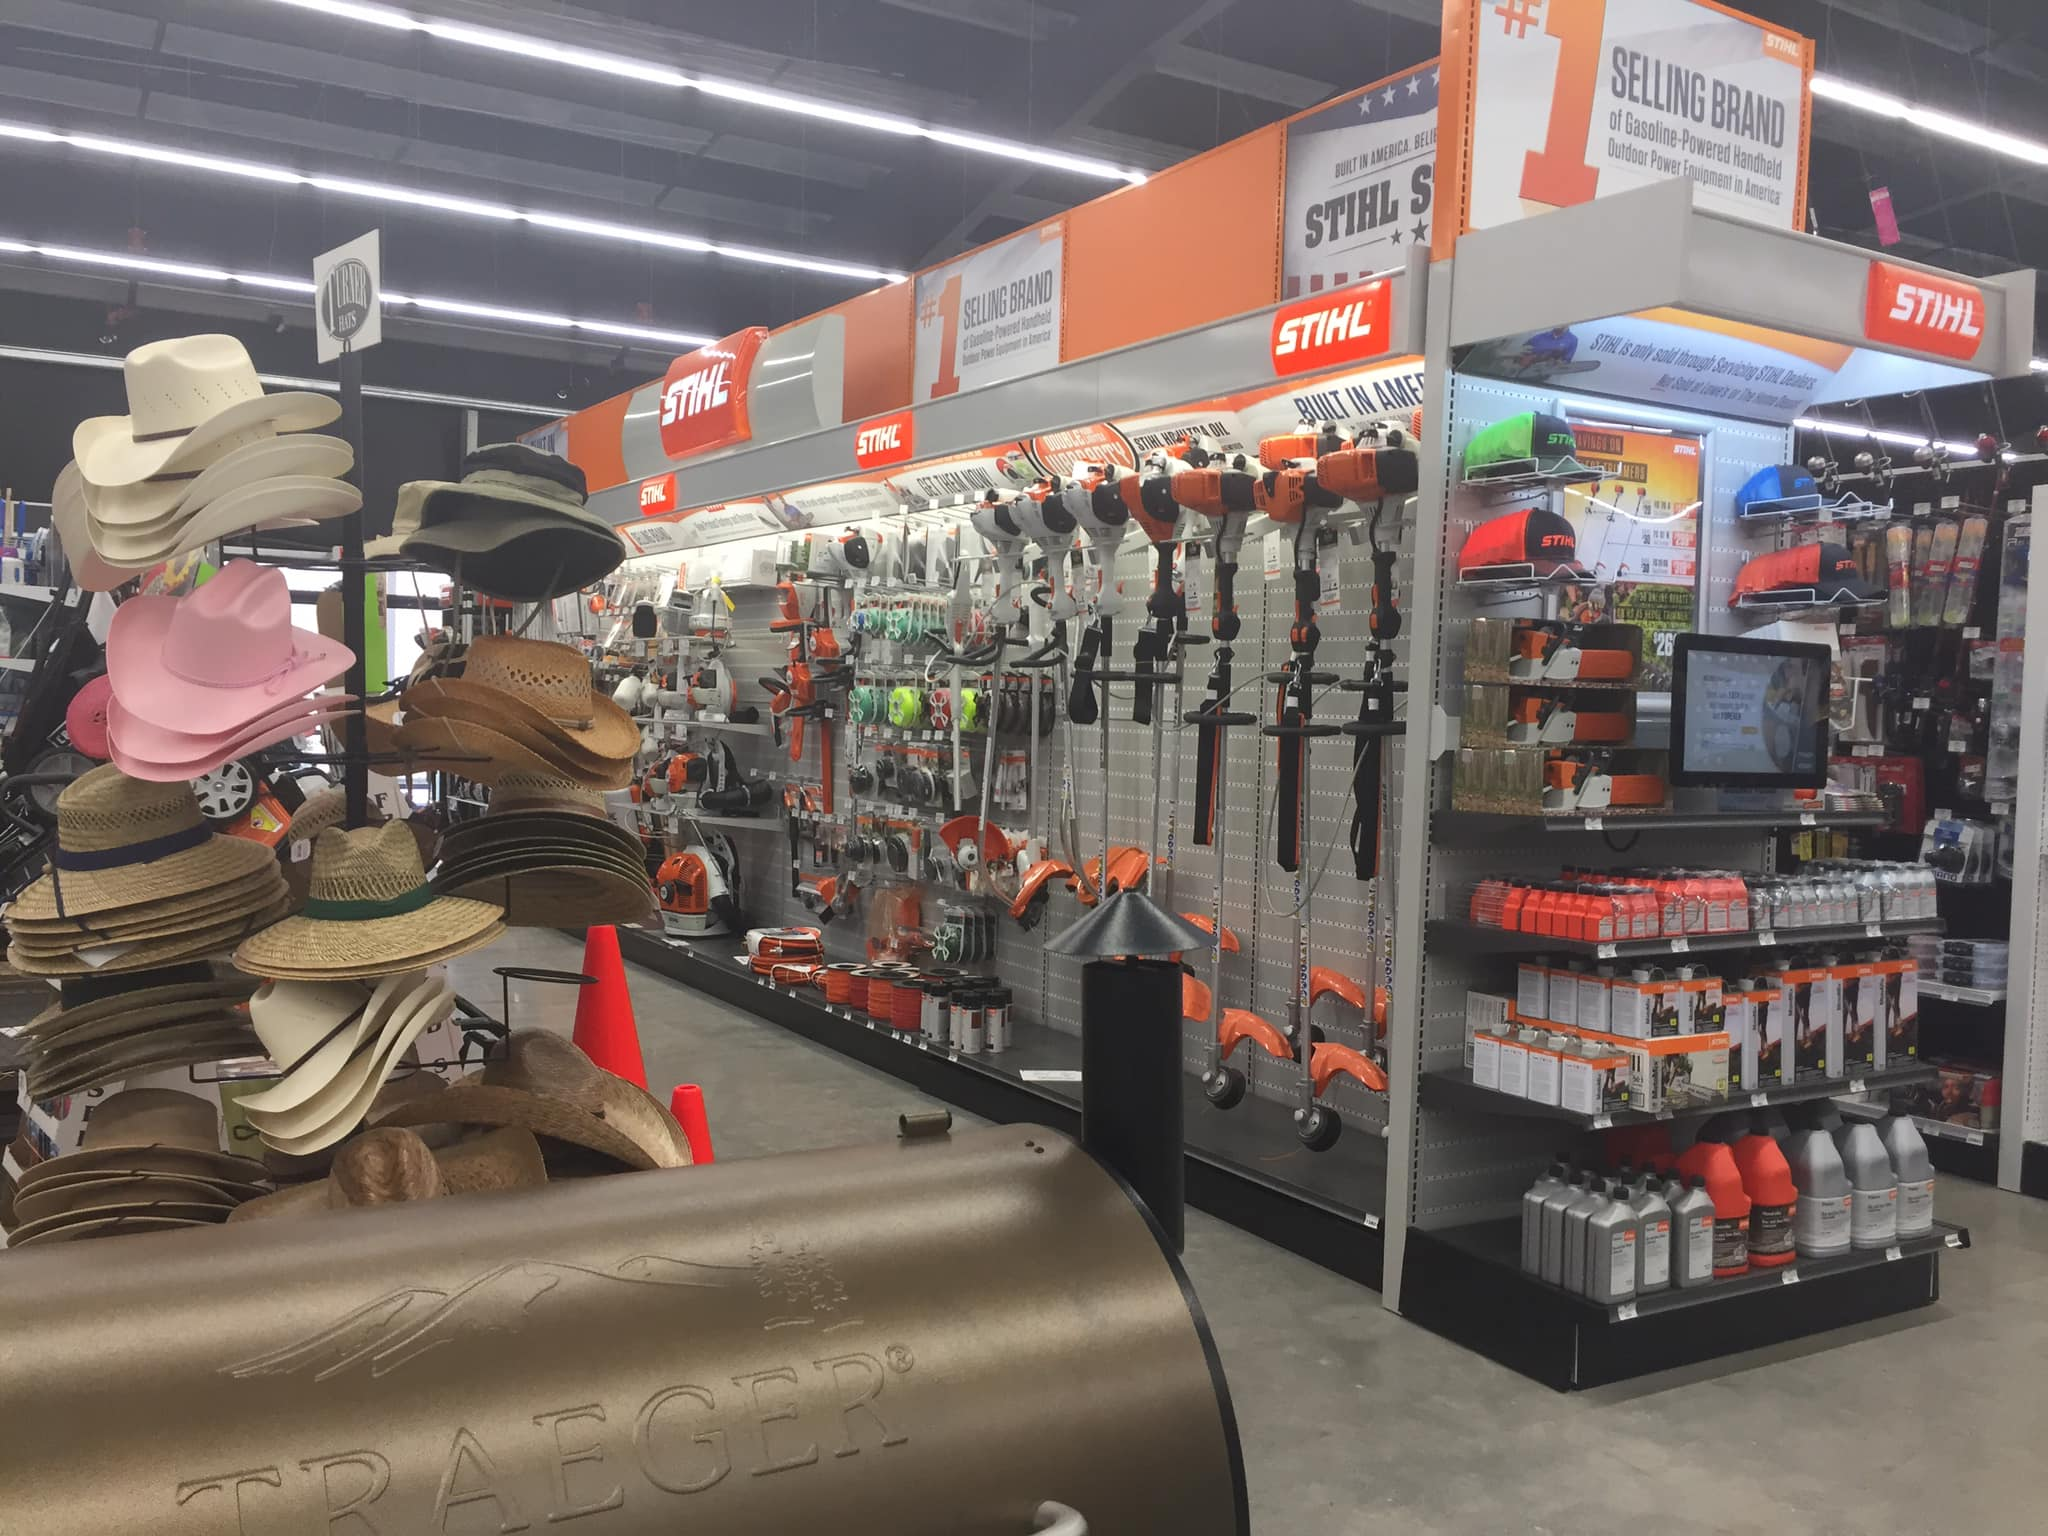 J&R's Ace Hardware celebrates GRAND OPENING in Porter, Texas